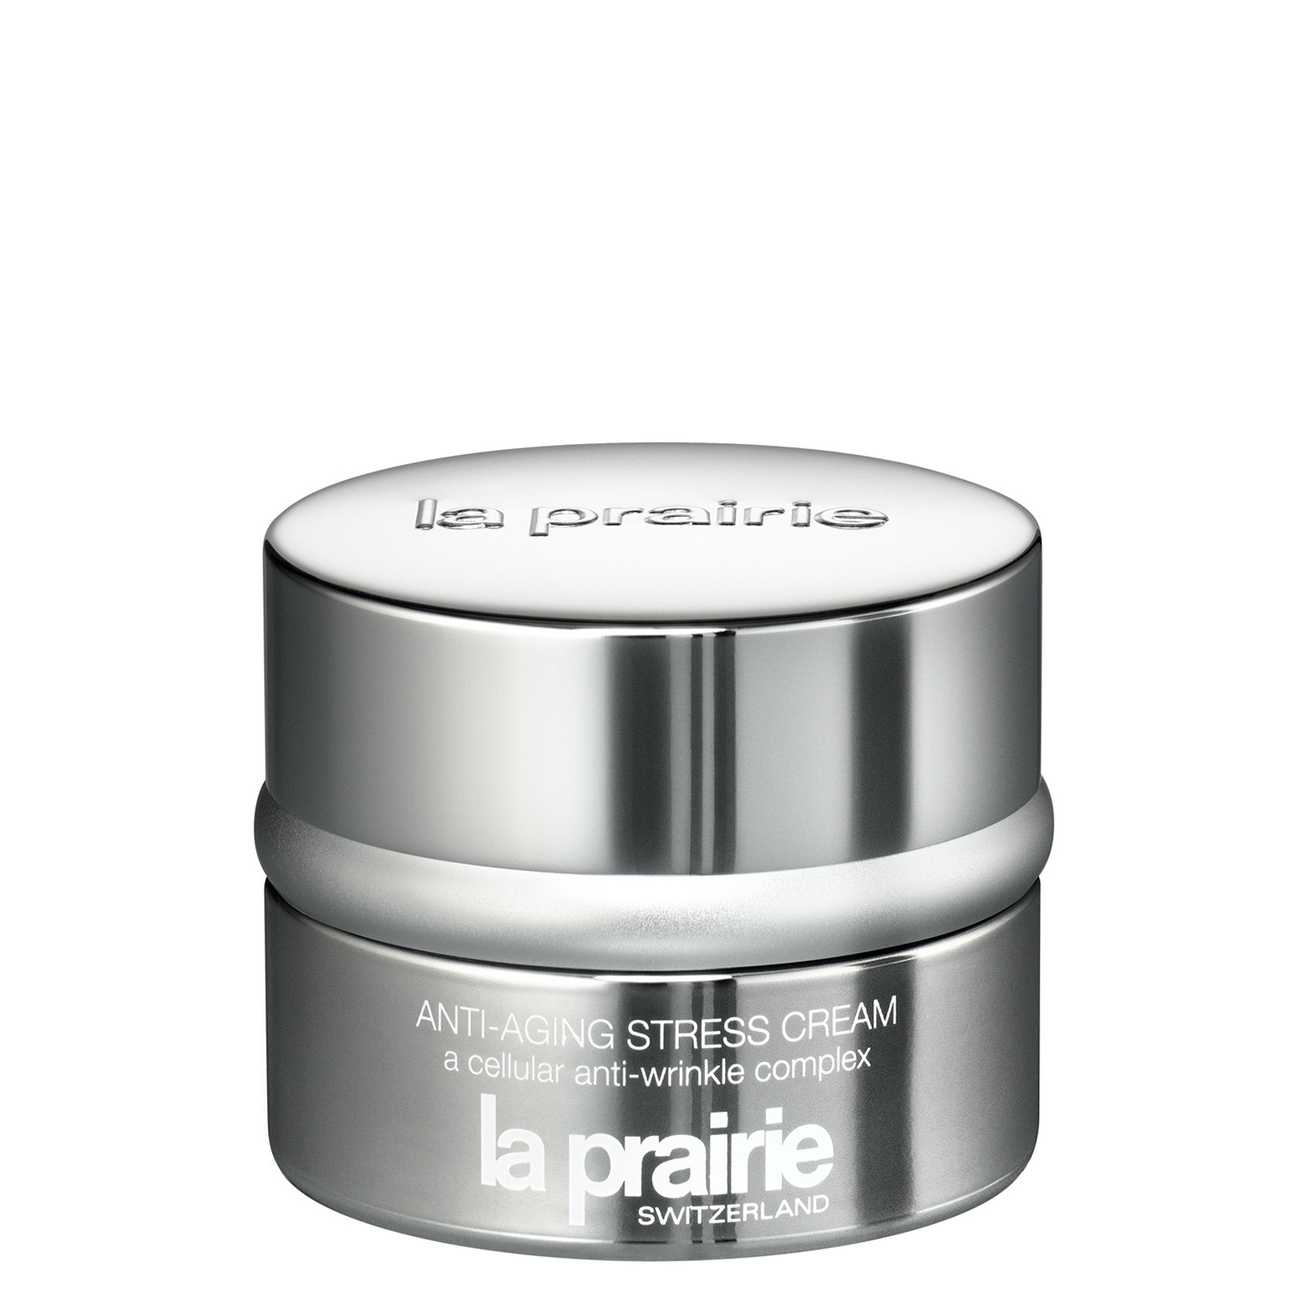 ANTI AGING STRESS CREAM A CELLULAR ANTI-WRINKLE COMPLEX 50 ML